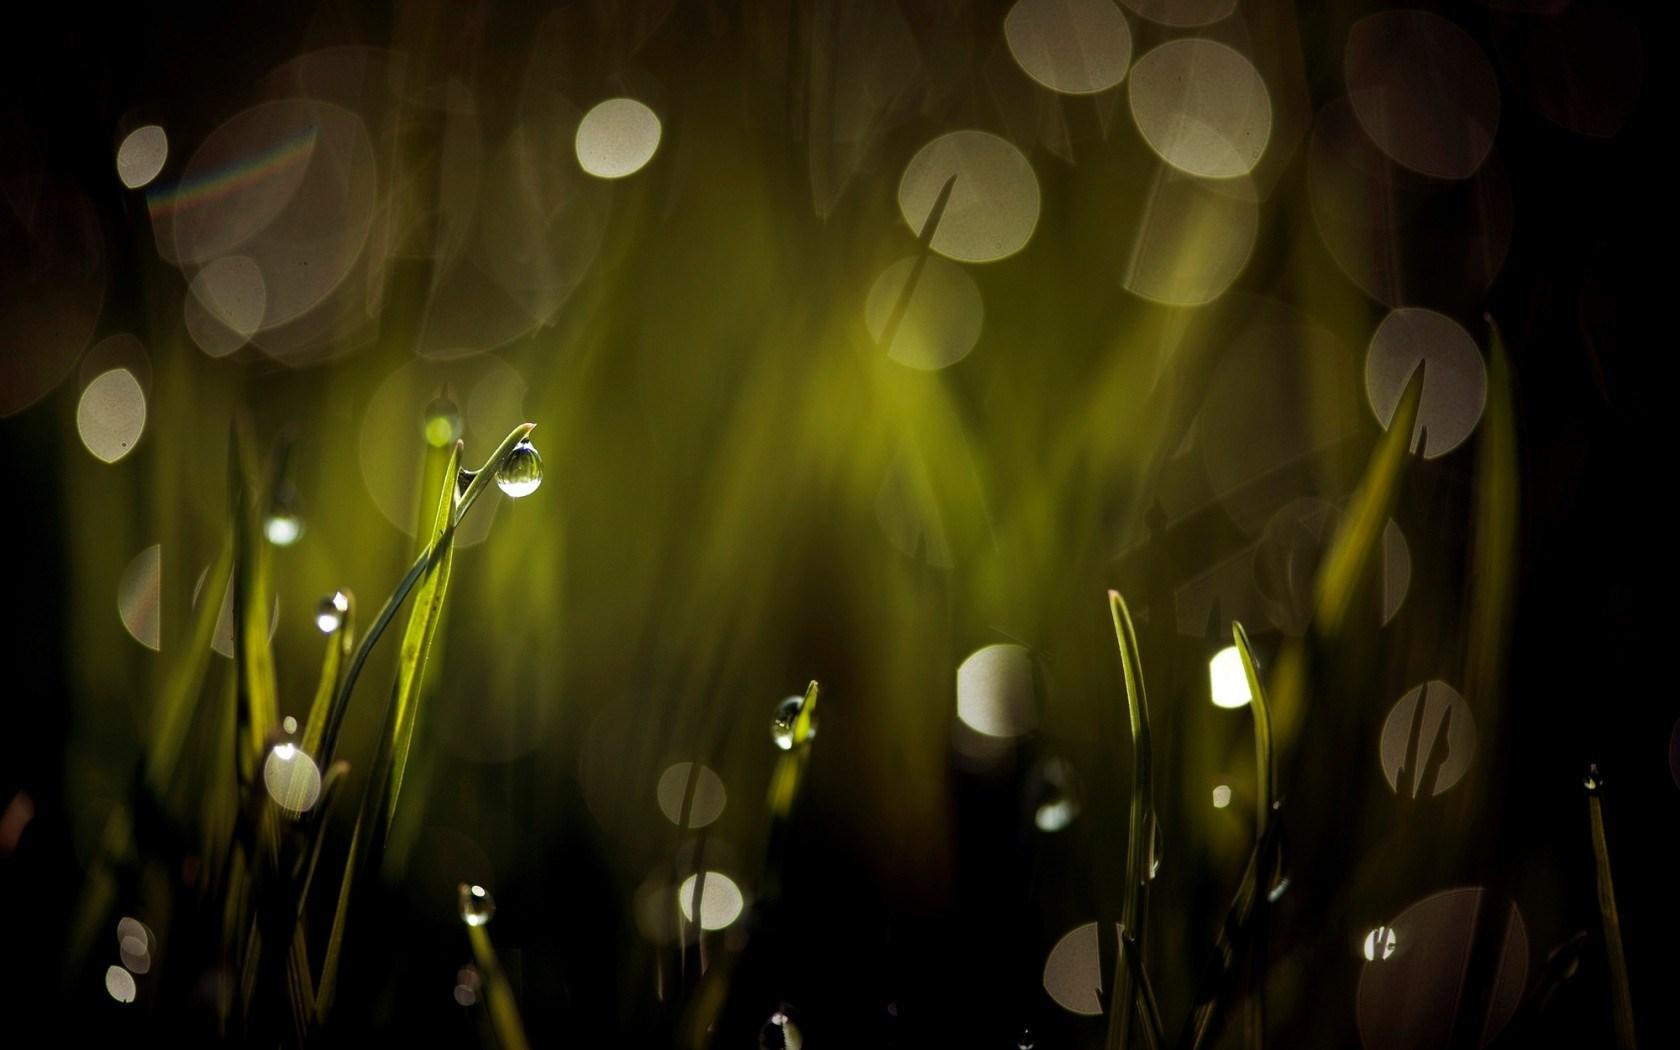 Amazing Grass Bokeh